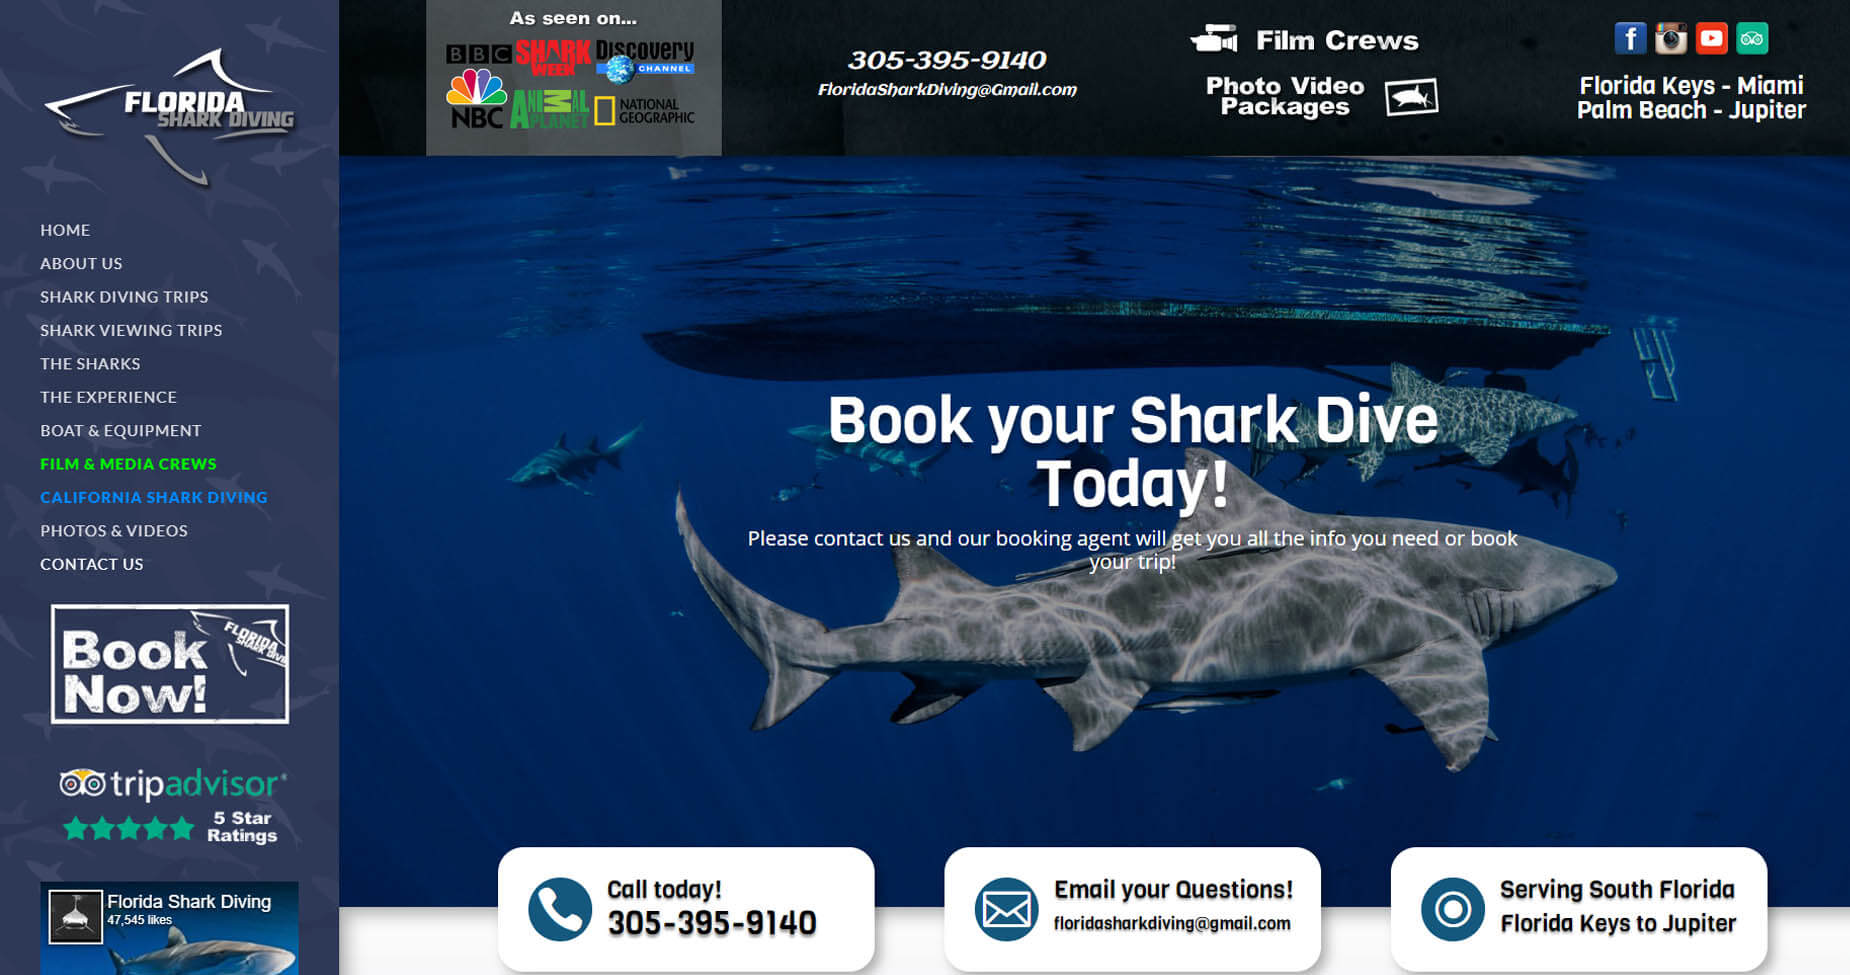 An image of the book now page of Florida Shark Diving, website created by Not Fade Away Marketing